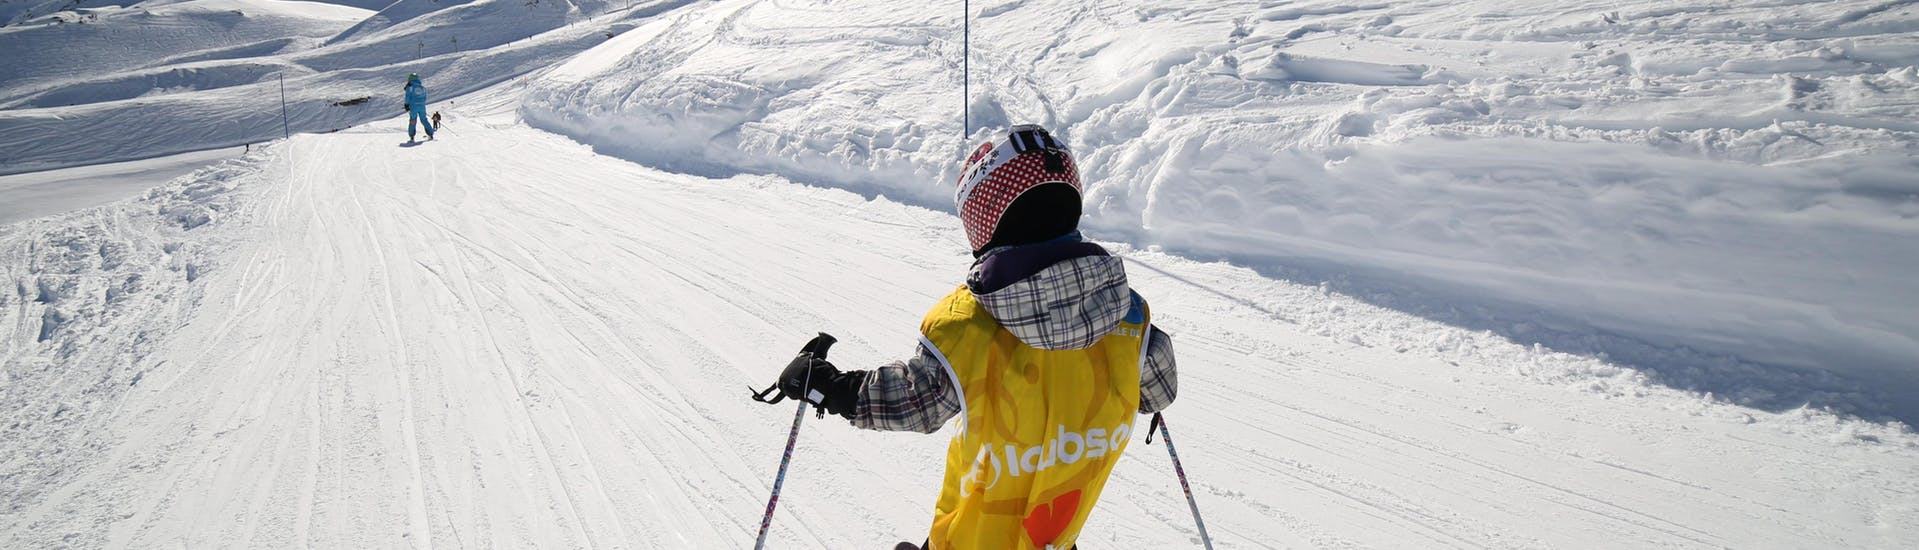 A youg skier is skiing down a snowy slope during his Kids Ski Lessons (6-12 years) - Holiday - All Levels with the ski school ESI Font Romeu.